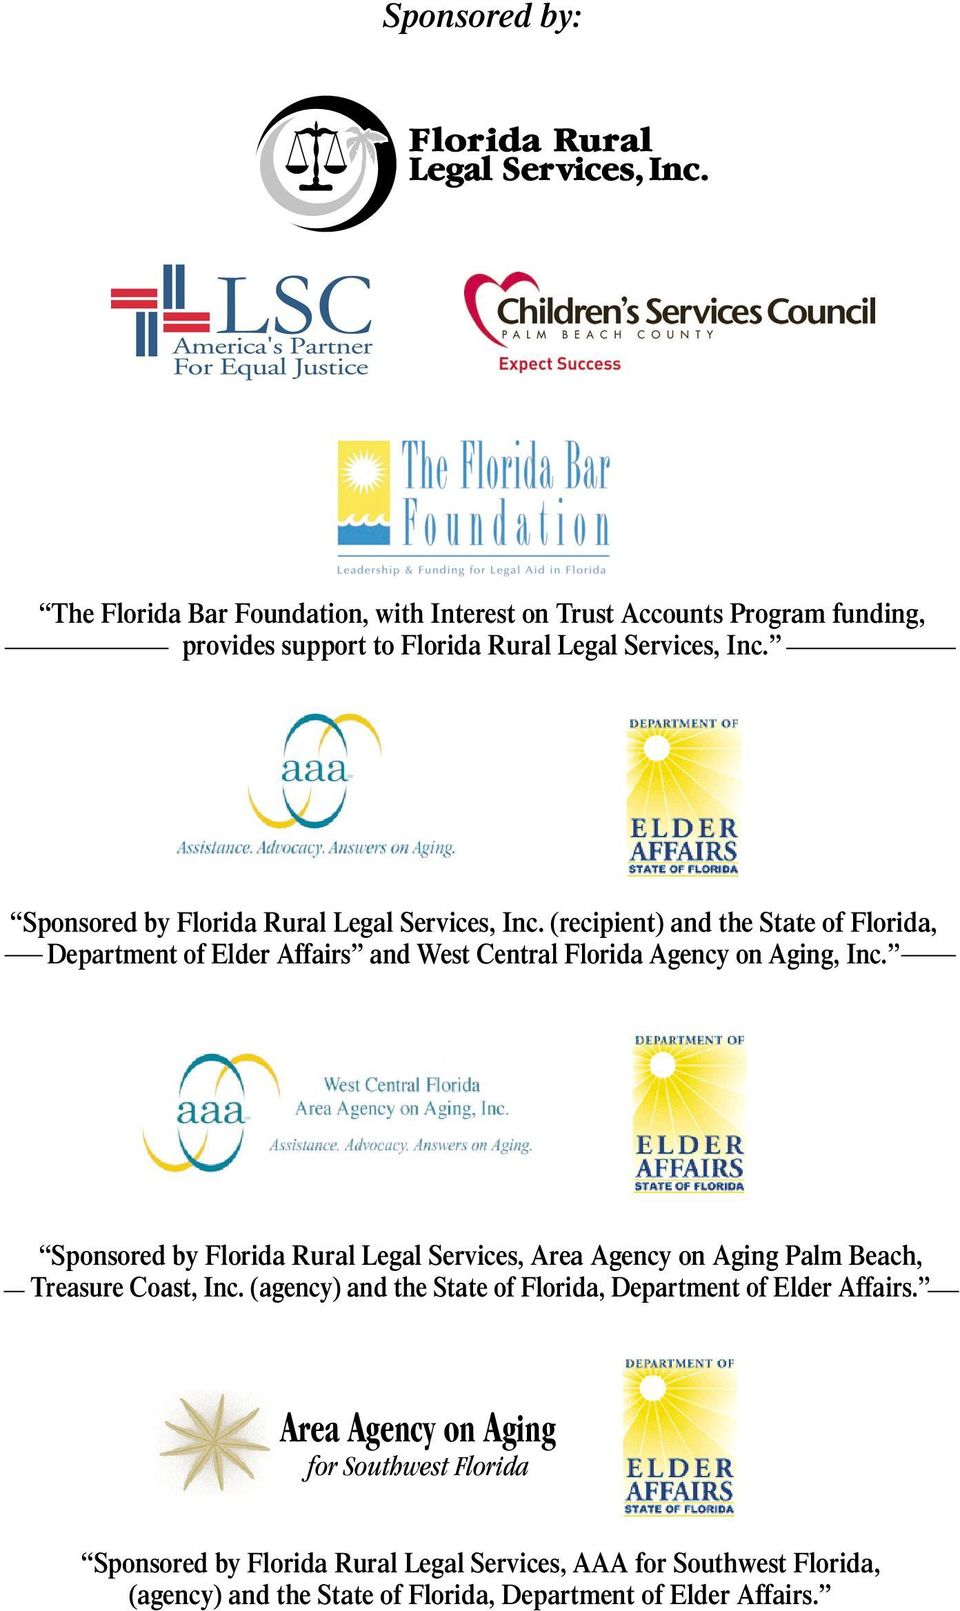 Sponsored by Florida Rural Legal Services, Area Agency on Aging Palm Beach, Treasure Coast, Inc. (agency) and the State of Florida, Department of Elder Affairs.